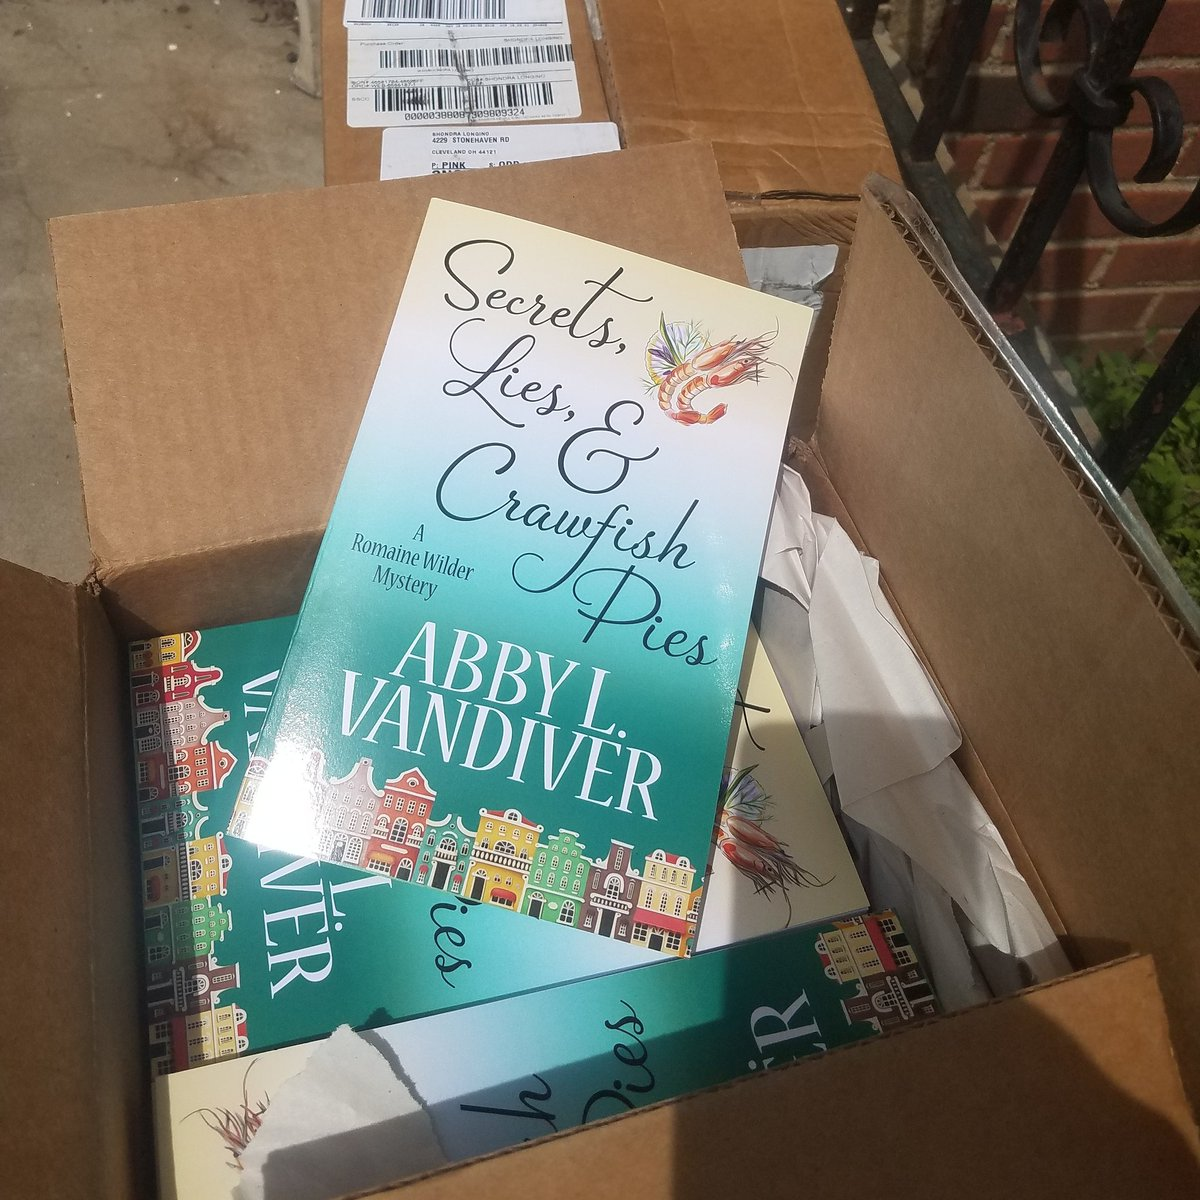 I&#39;ve got mail! #published #SoHappy #henerypress #CozyMystery #ASMSG #IARTG<br>http://pic.twitter.com/2mRmtR3eJA